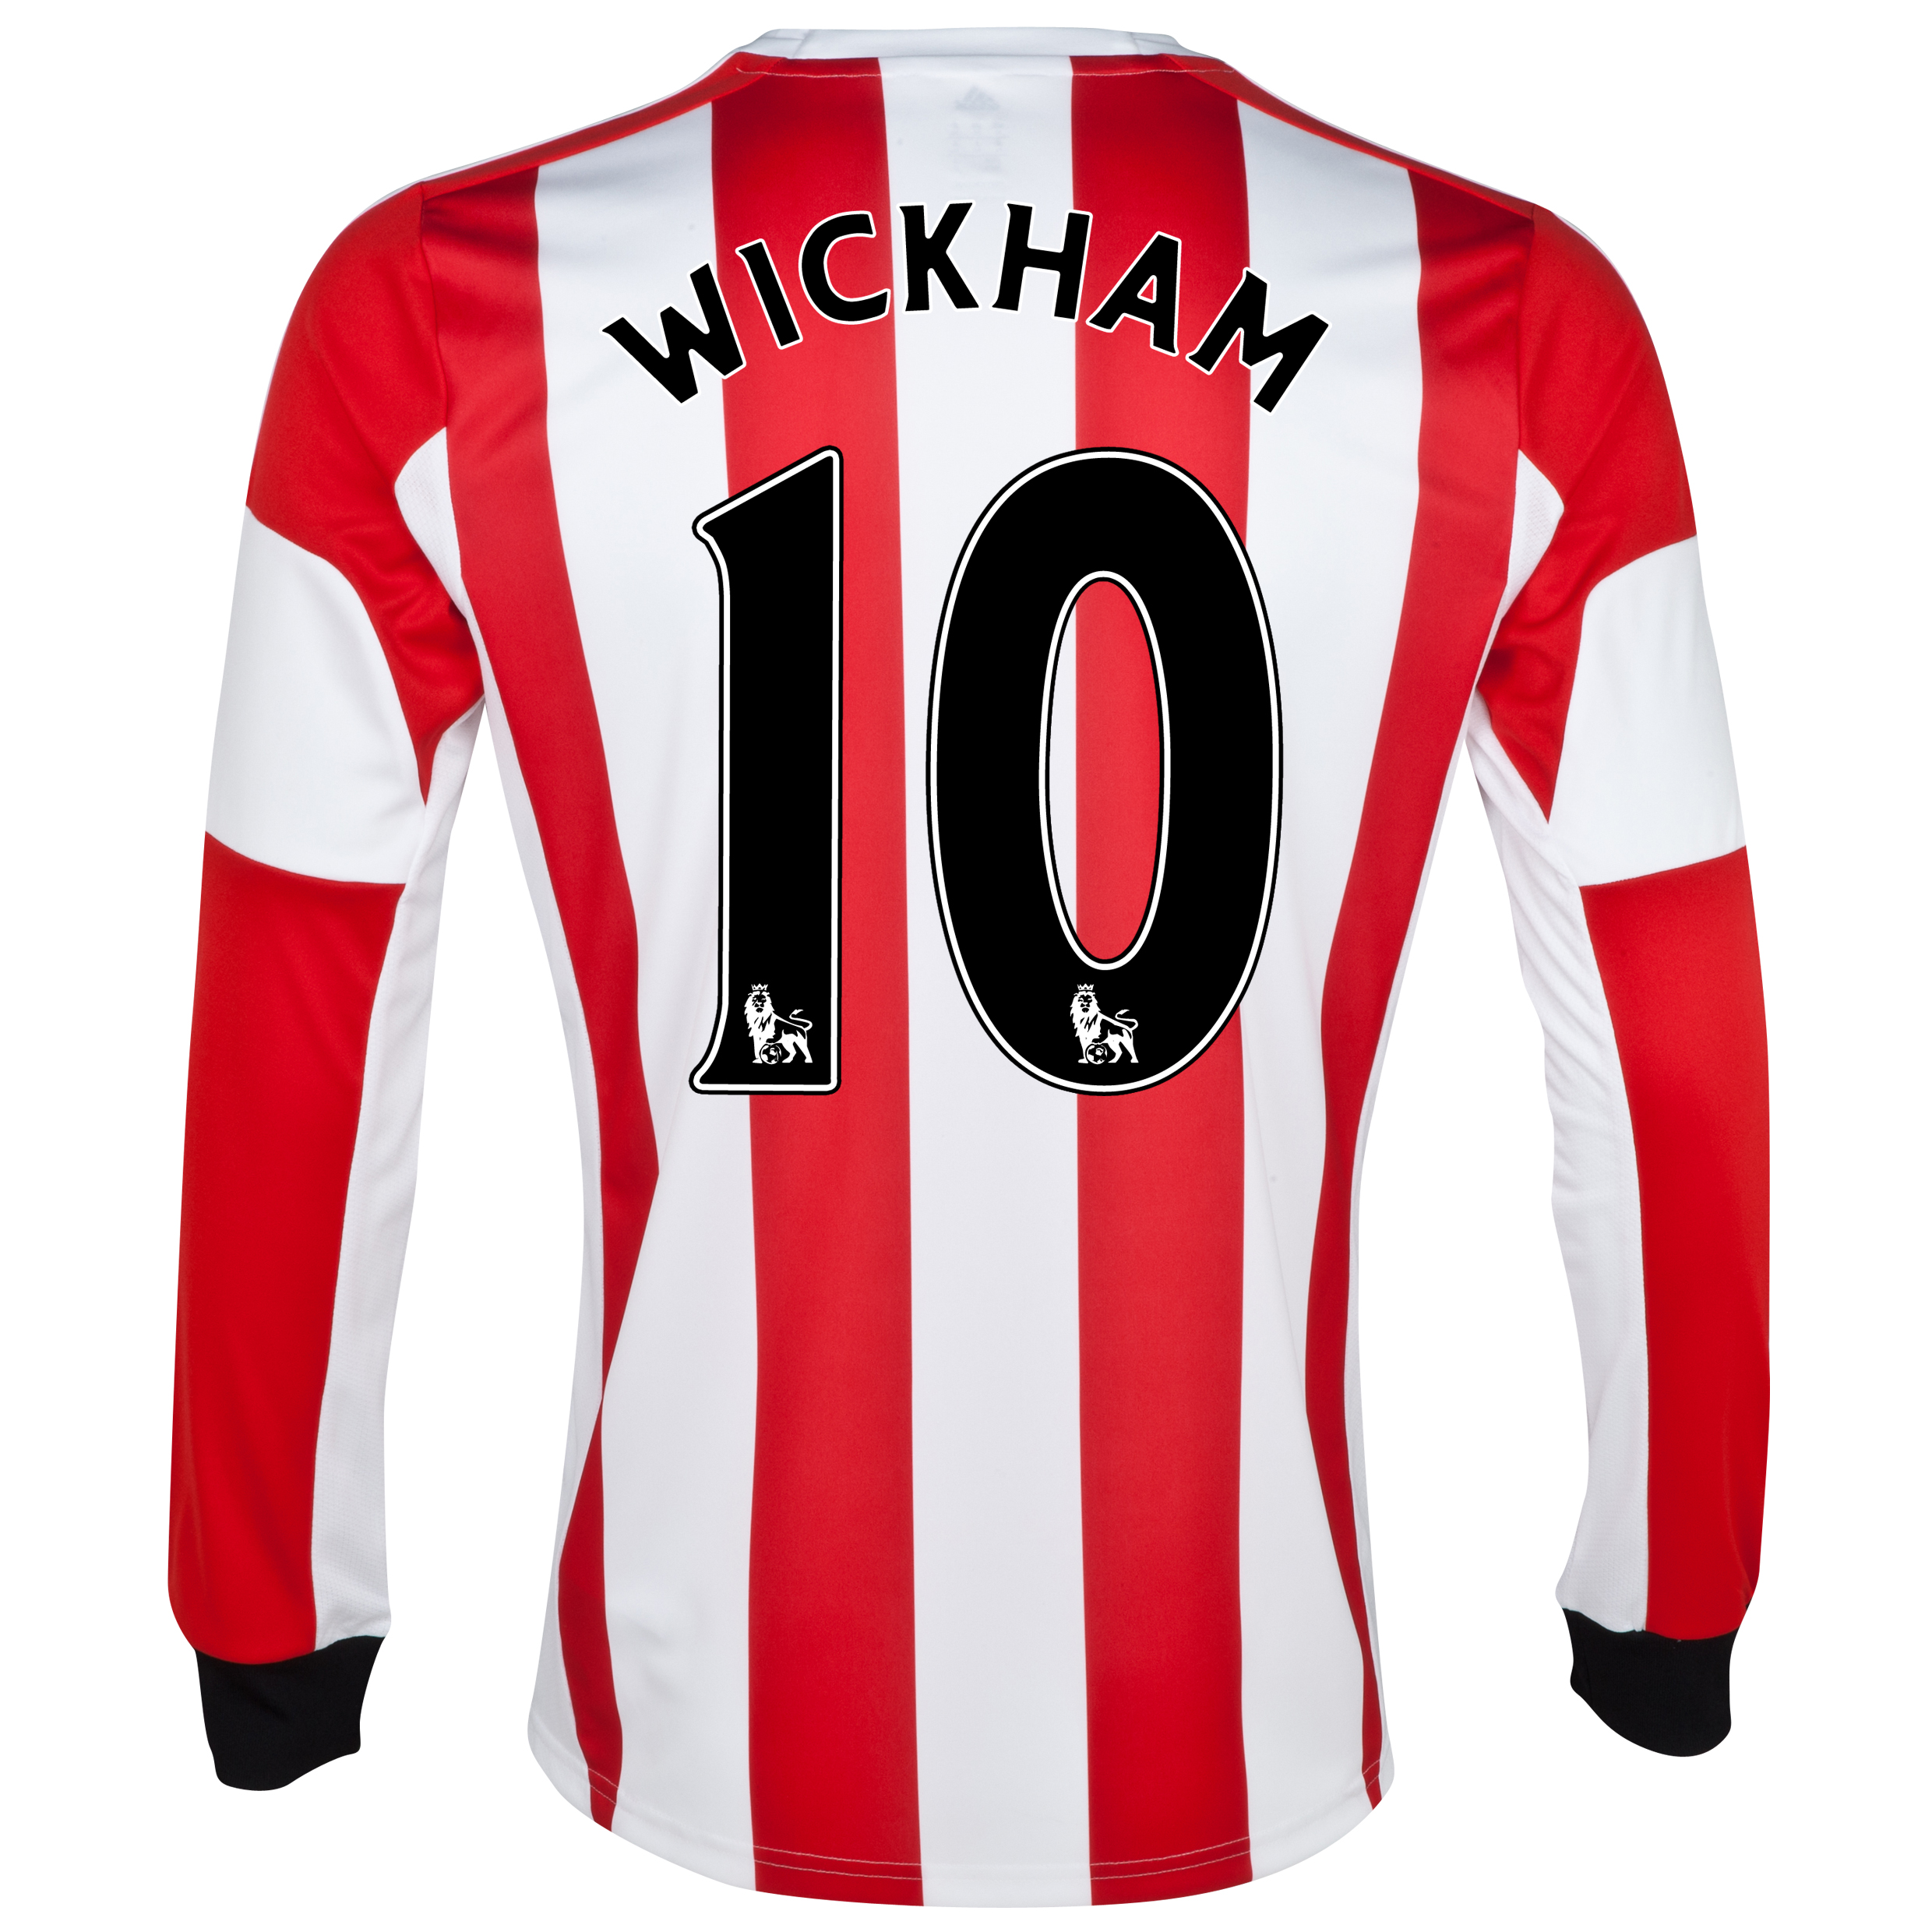 Sunderland Home Shirt 2013/14 - Long Sleeved - Junior with Wickham 10 printing